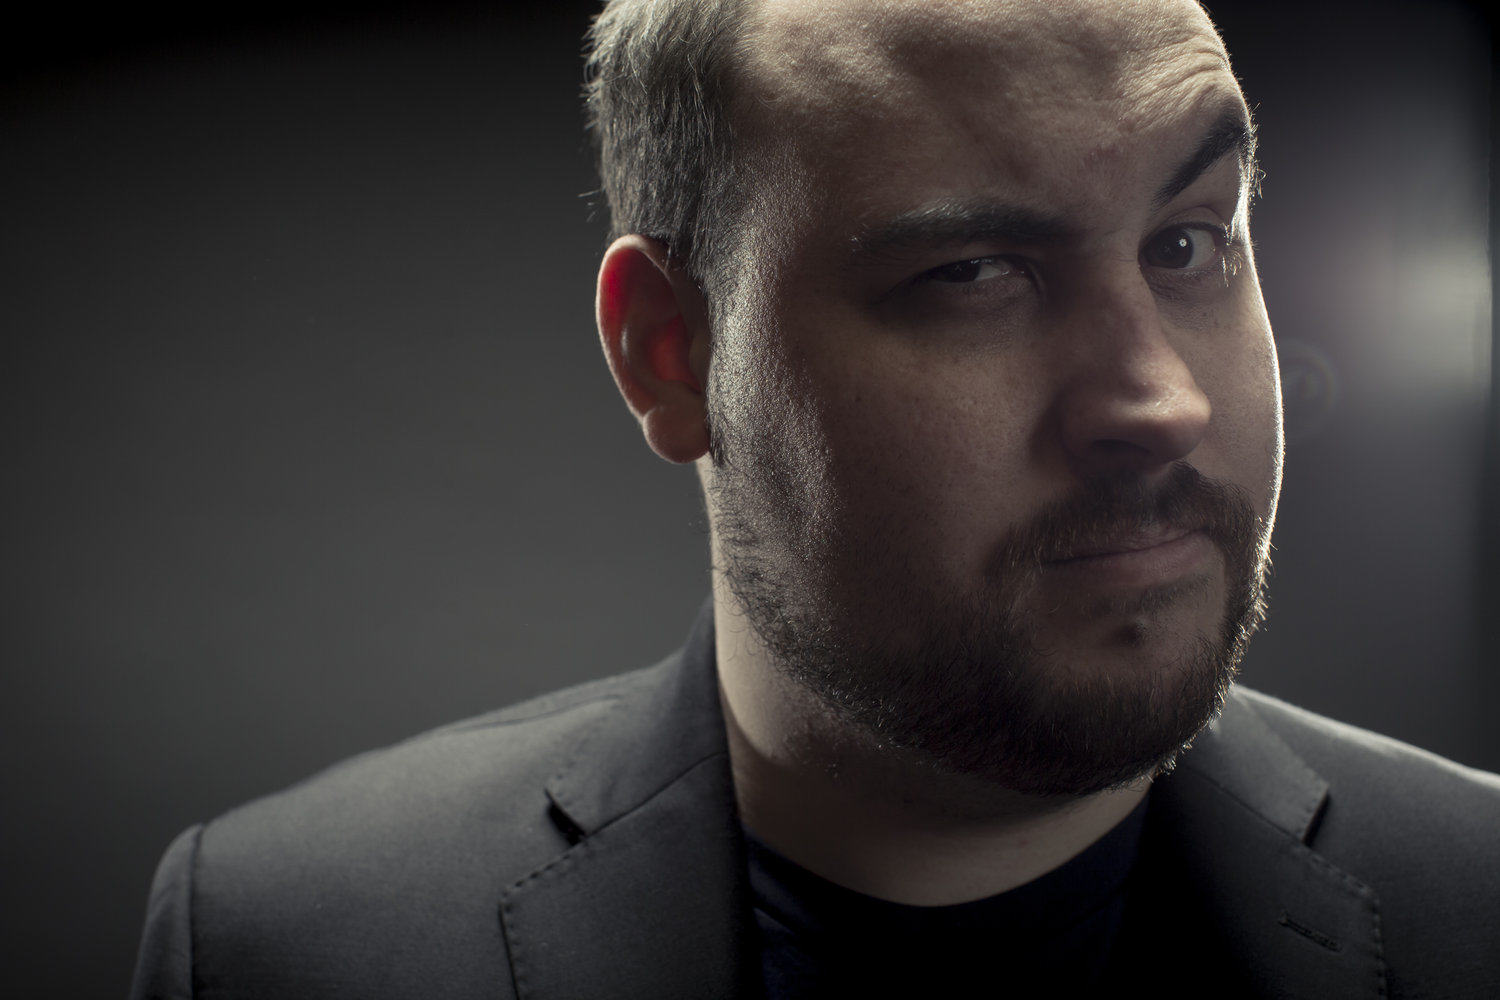 TotalBiscuit Announces That Hes Leaving Social Media john totalbiscuit bain1